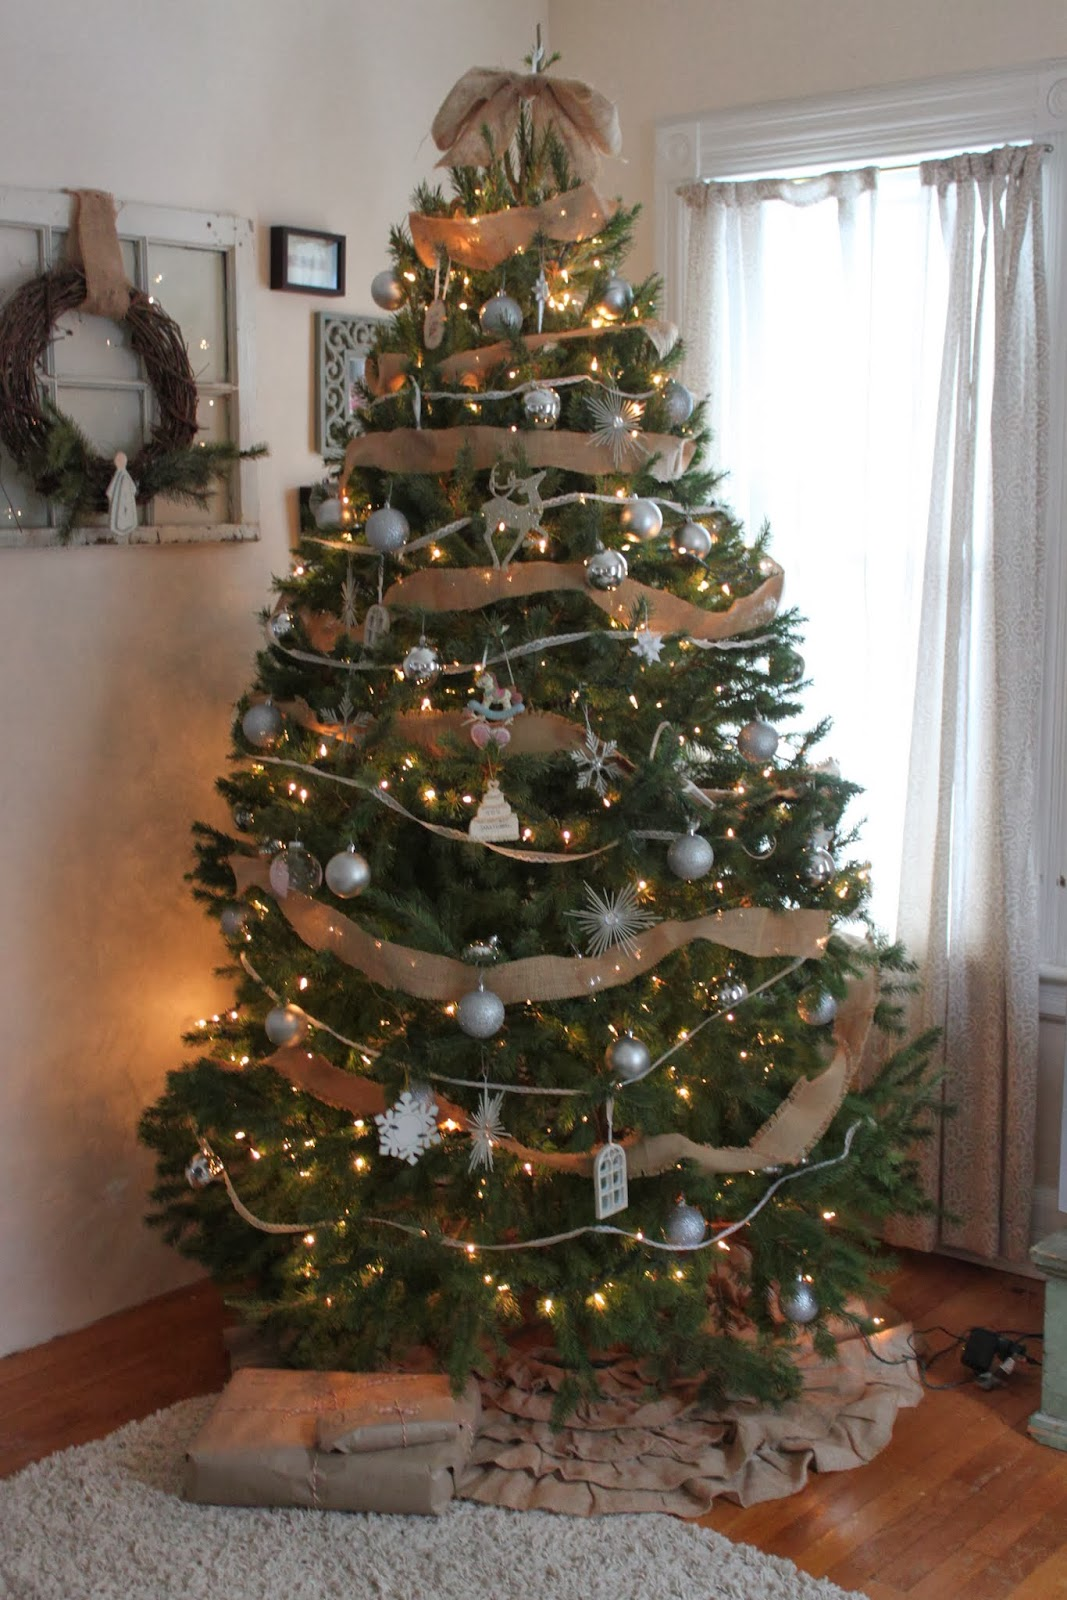 Color schemes for christmas trees - For The Past Two Years I Ve Gone With A Burlap Lace And Silver Color Scheme Mostly Because I M Really Picky About Things Matching And Those Colors Match